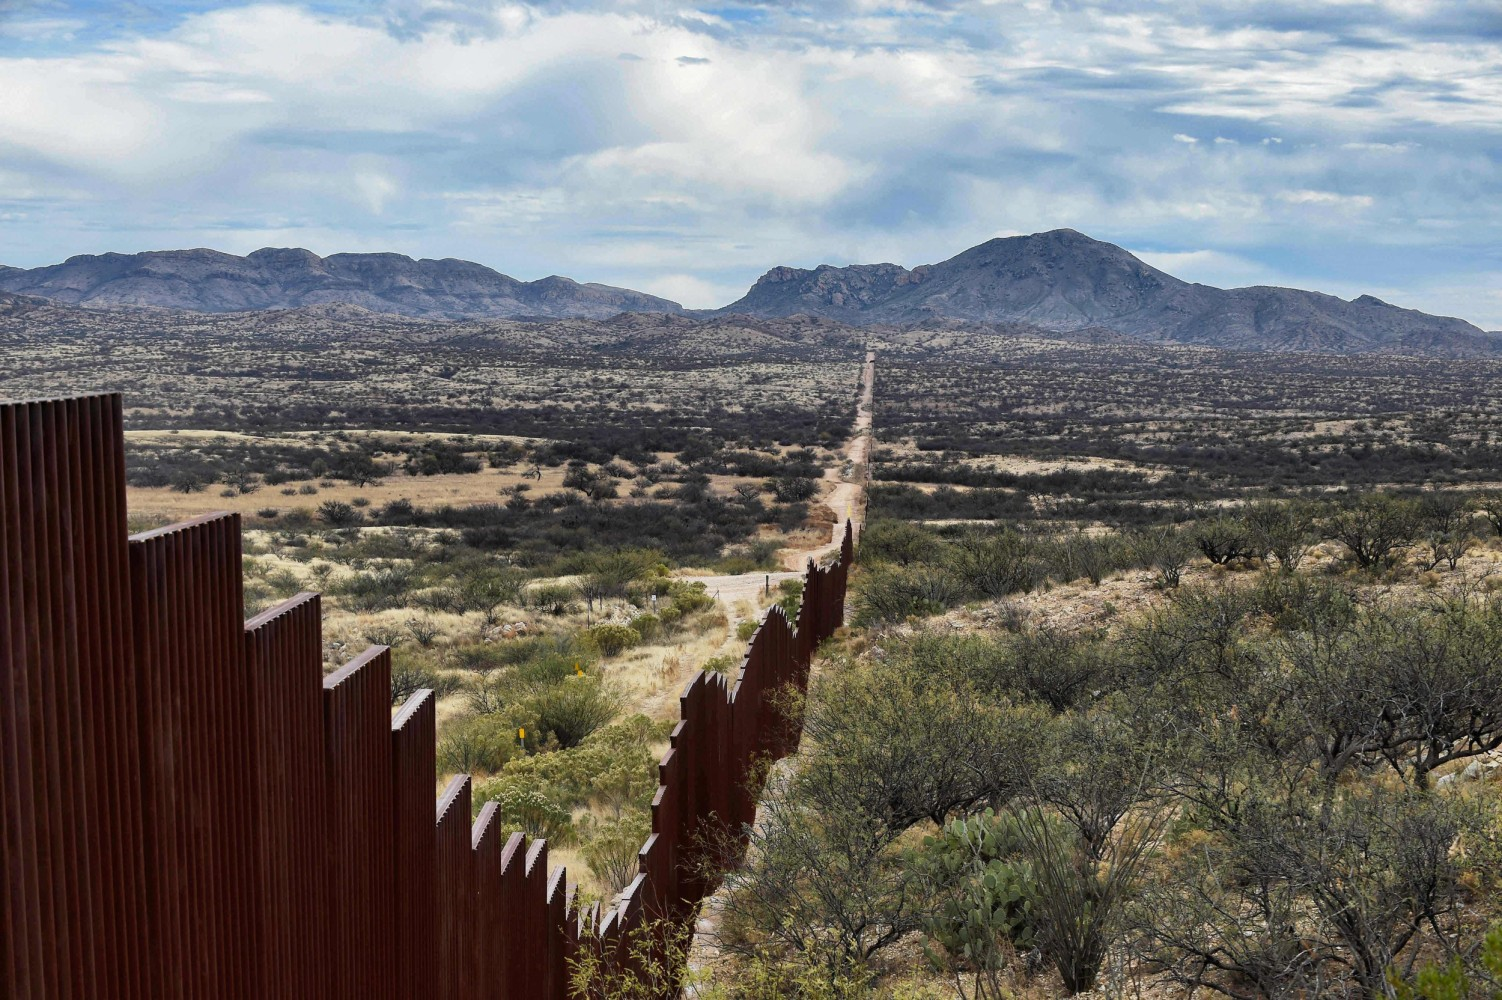 mexican border The borderlands of california and mexico change dramatically as one drives toward the pacific ocean the imperial sand dunes give way to majestic mountain peaks and, eventually, the lush hills of .